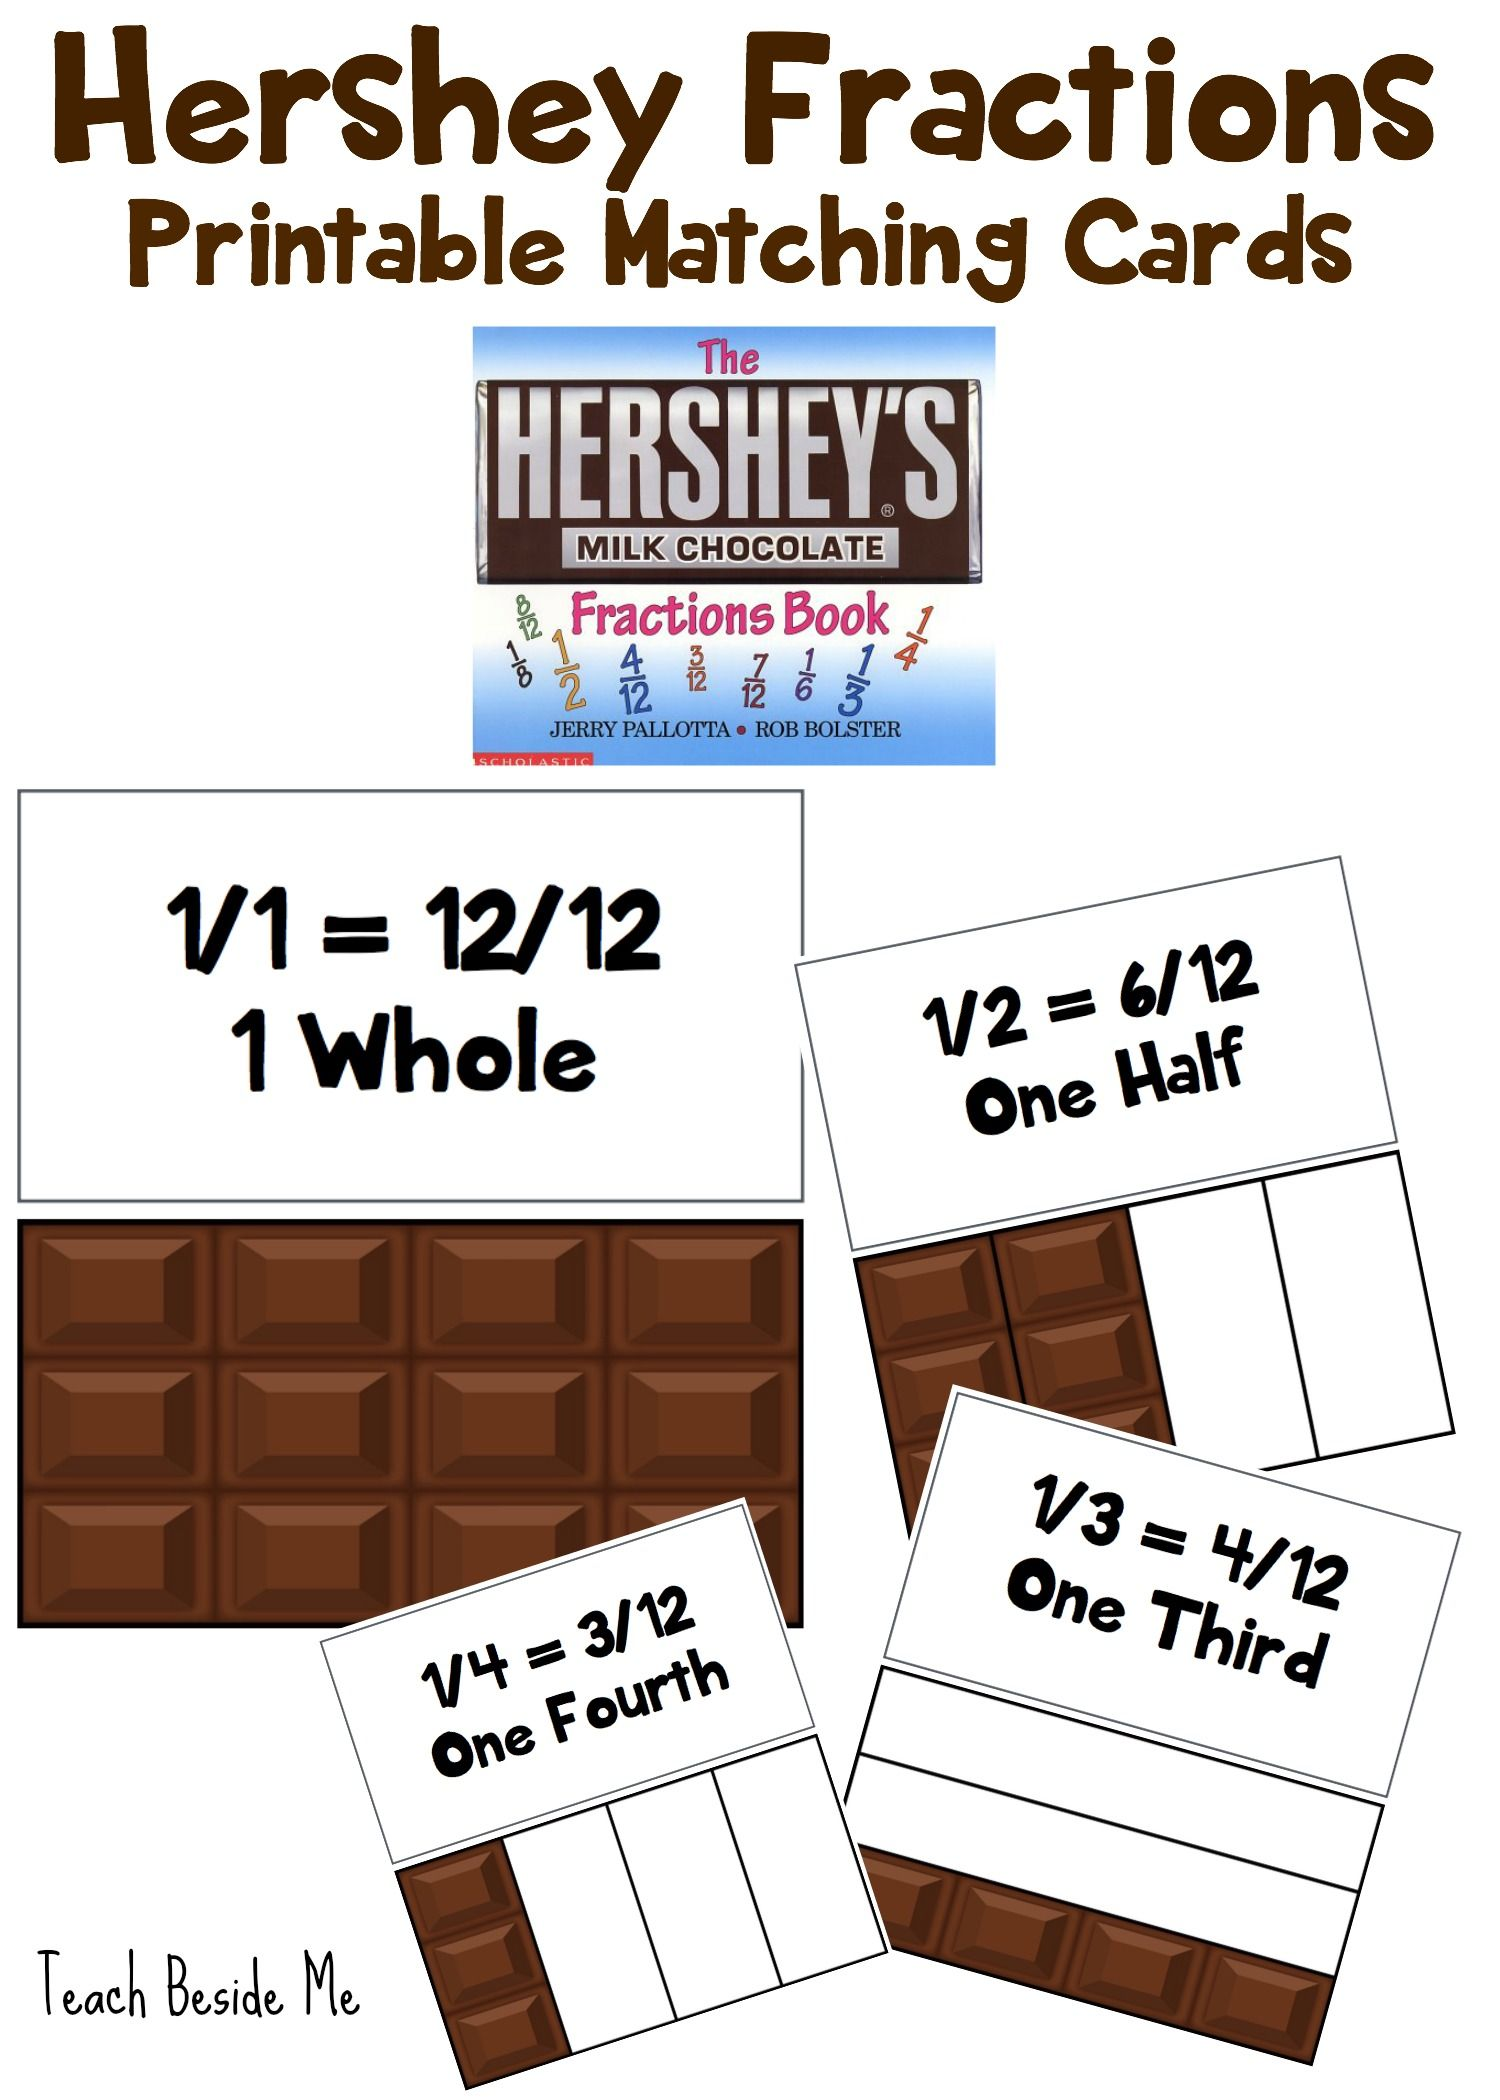 hershey fractions printable cards 1 math pinterest math bar rh pinterest com Chocolate Lab Puppies Hershey Medical Center Laboratory